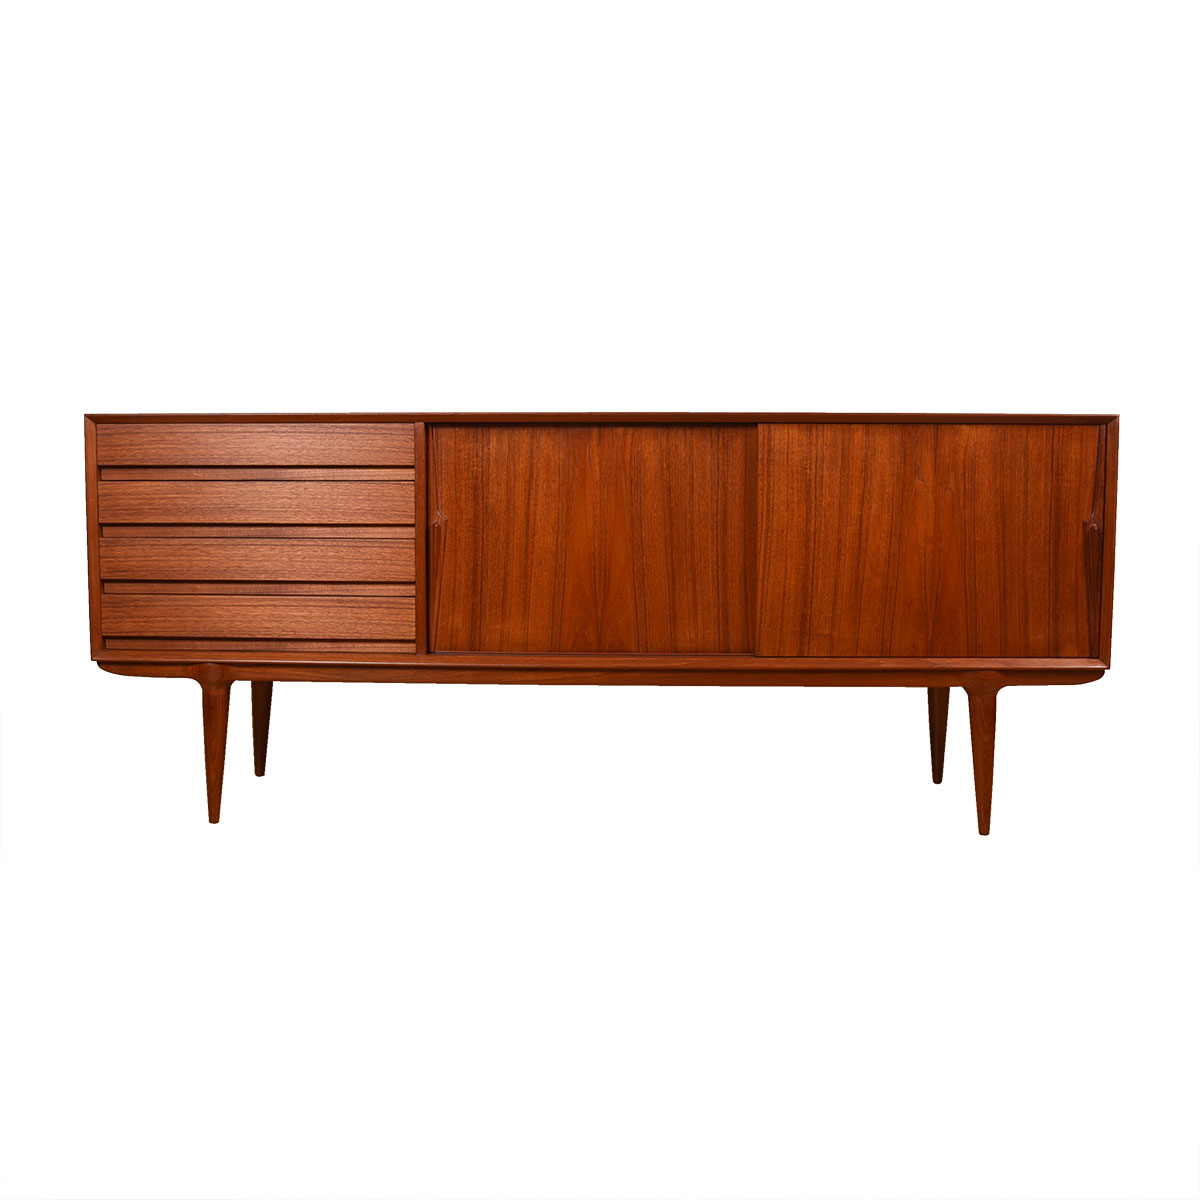 Sleek Danish Modern Teak Credenza / Room Divider